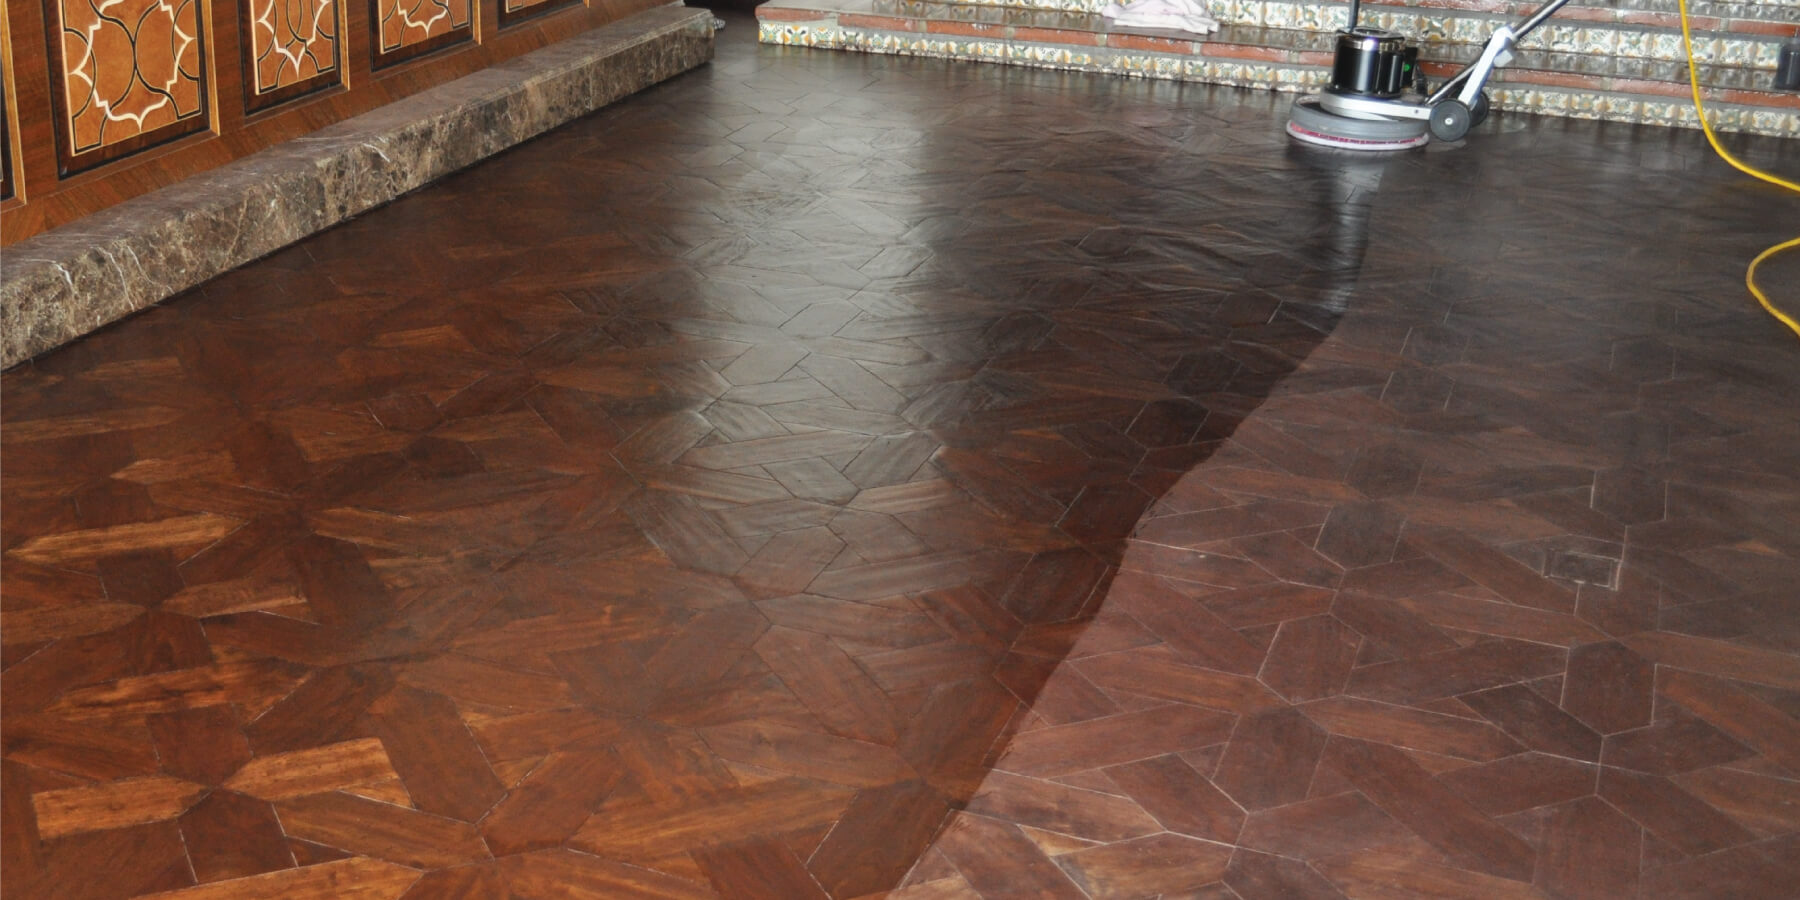 How to renovate a Rubio Monocoat floor.